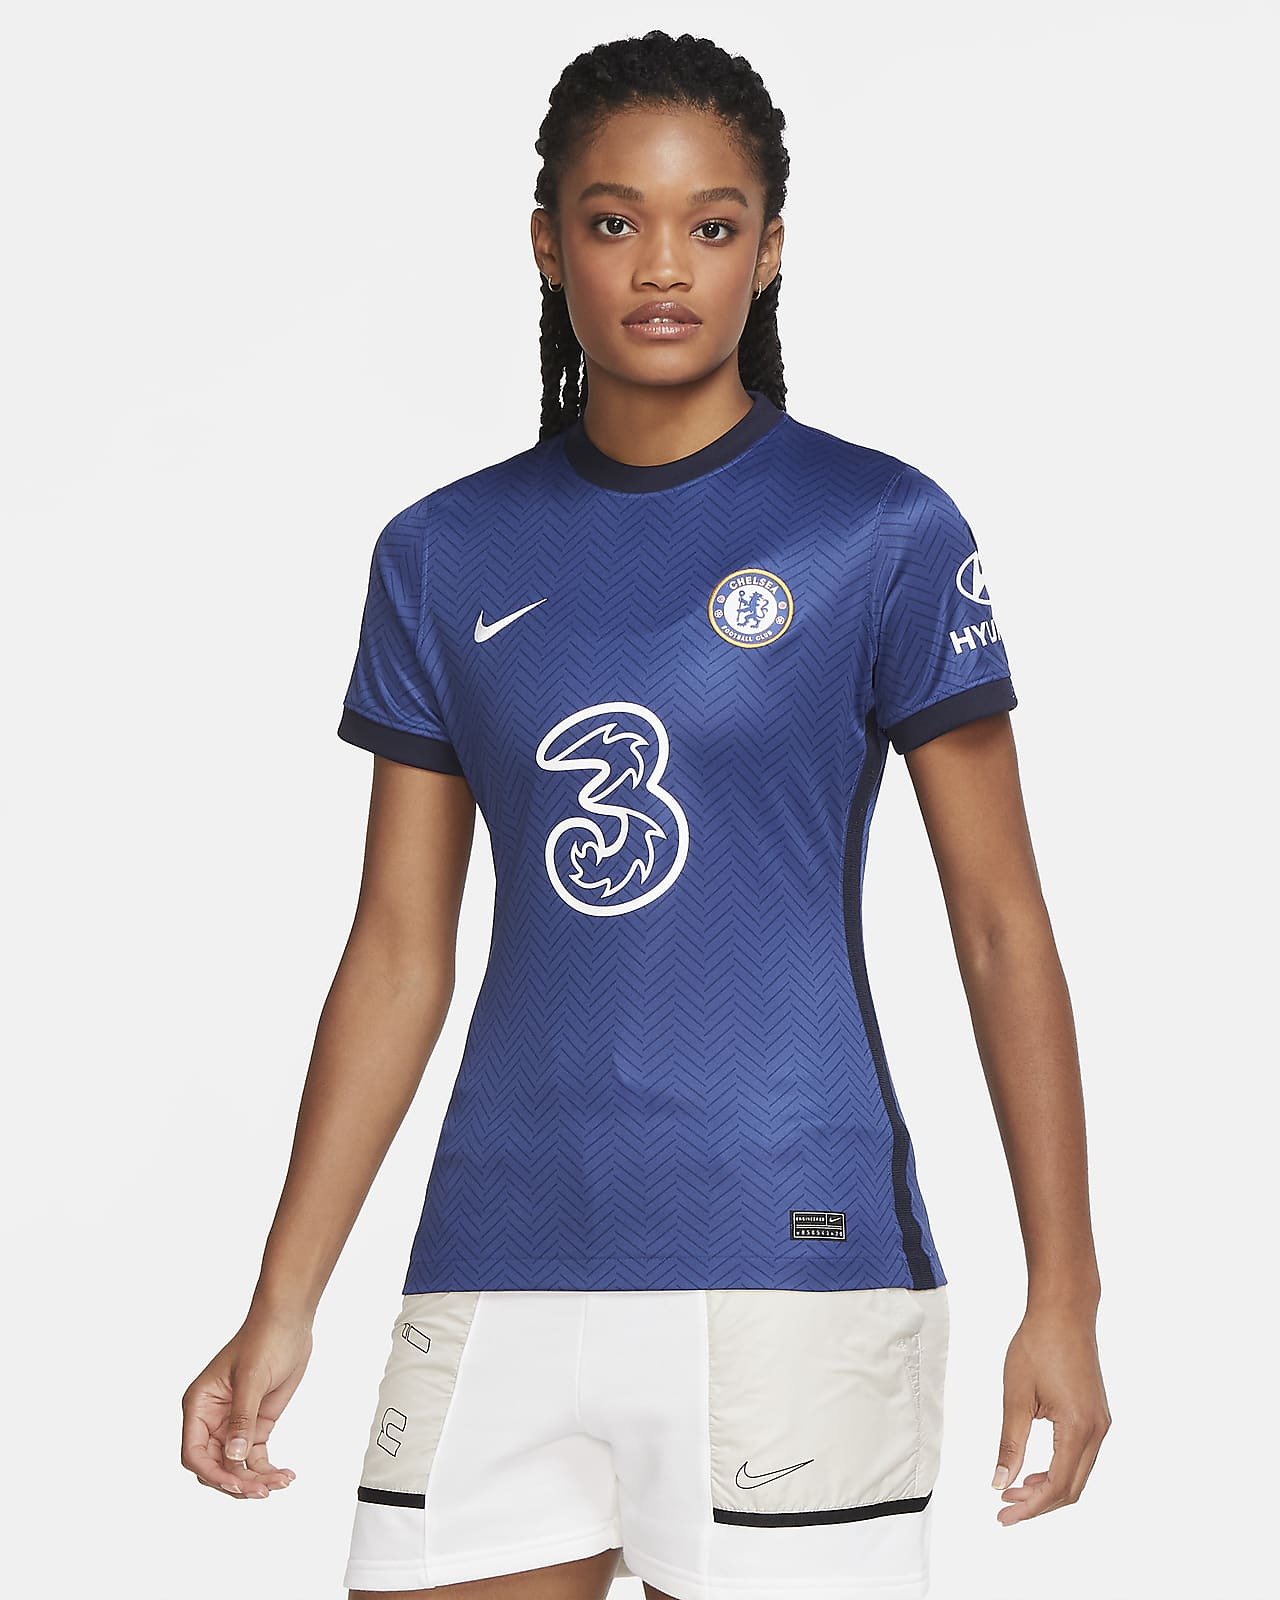 Chelsea F.C. 2020/21 Stadium Home Women's Football Shirt